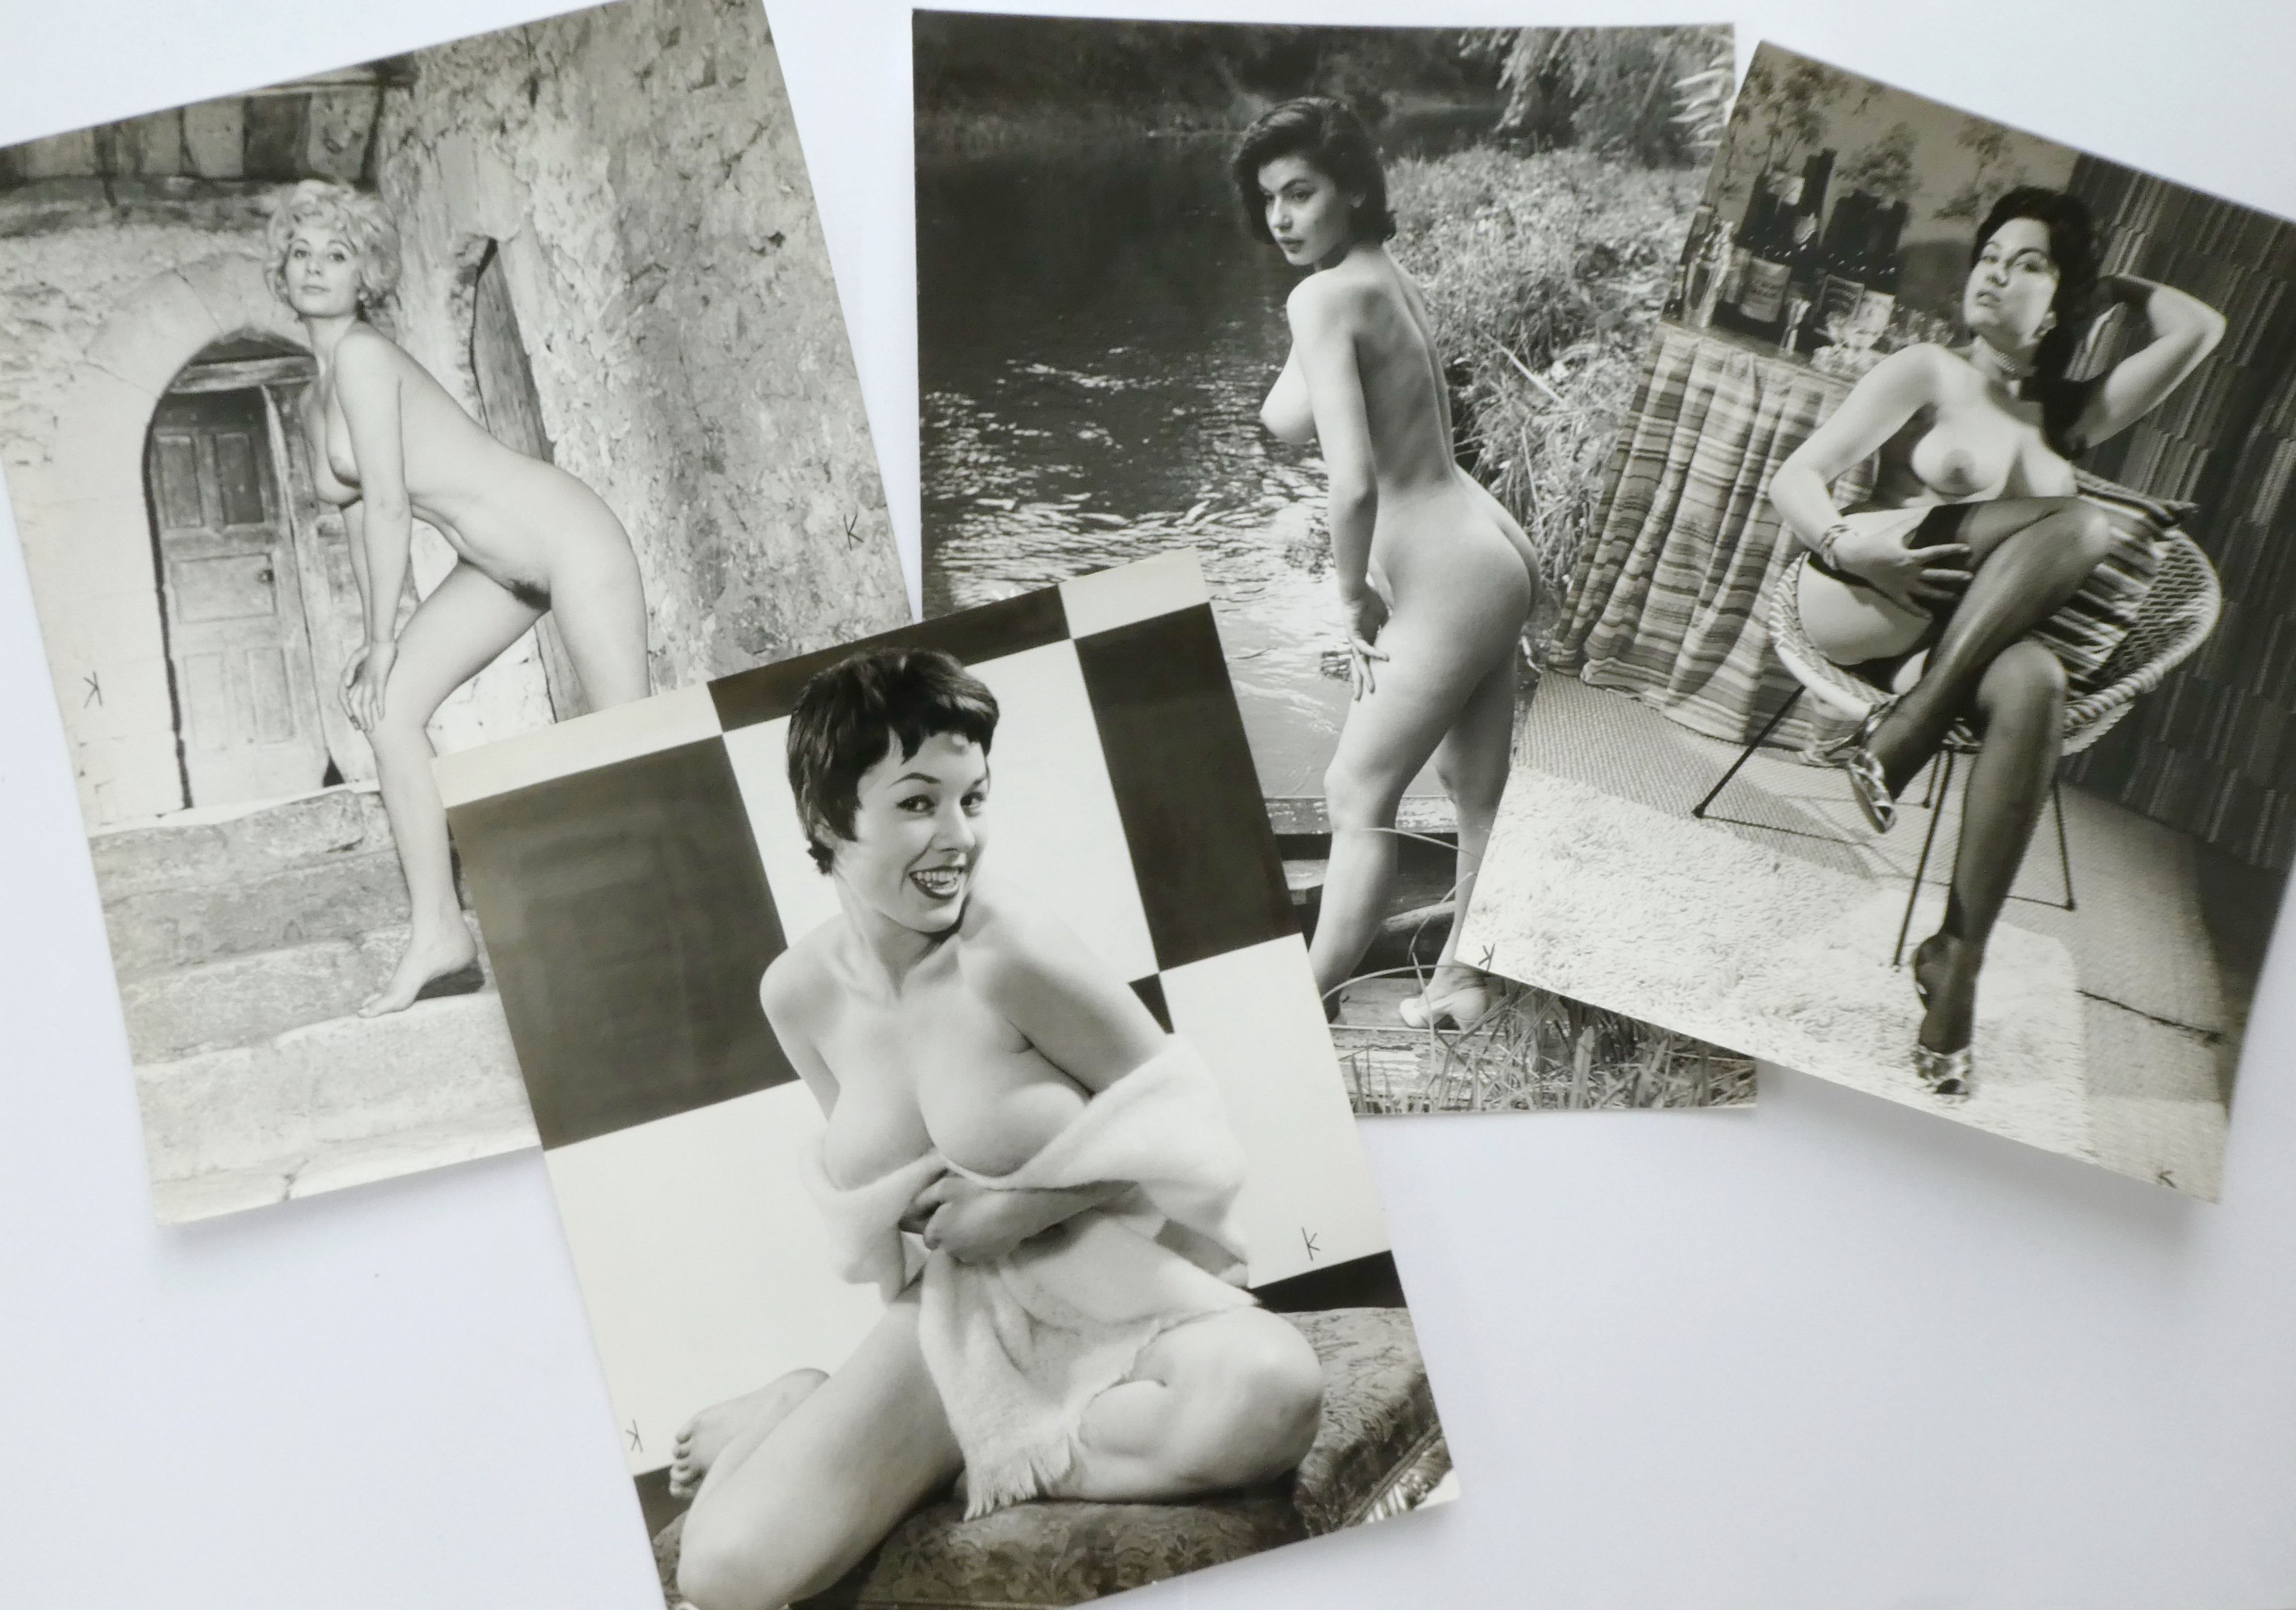 Pinup/glamour photos in large format, many by famous photographers